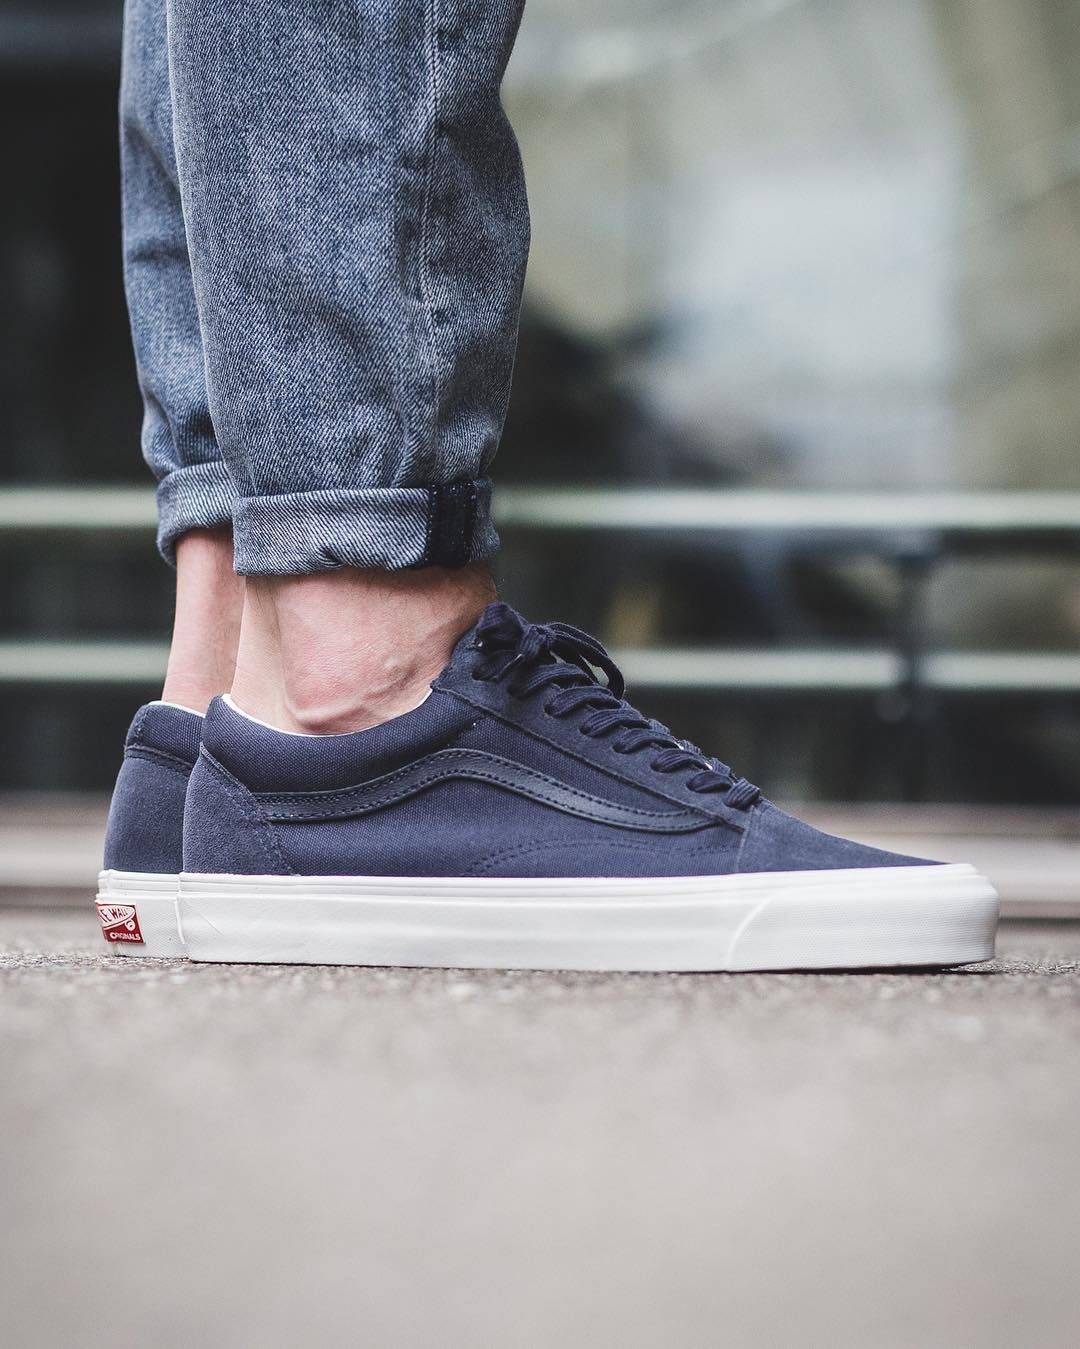 57c8112b07 VANS OG Old Skool LX